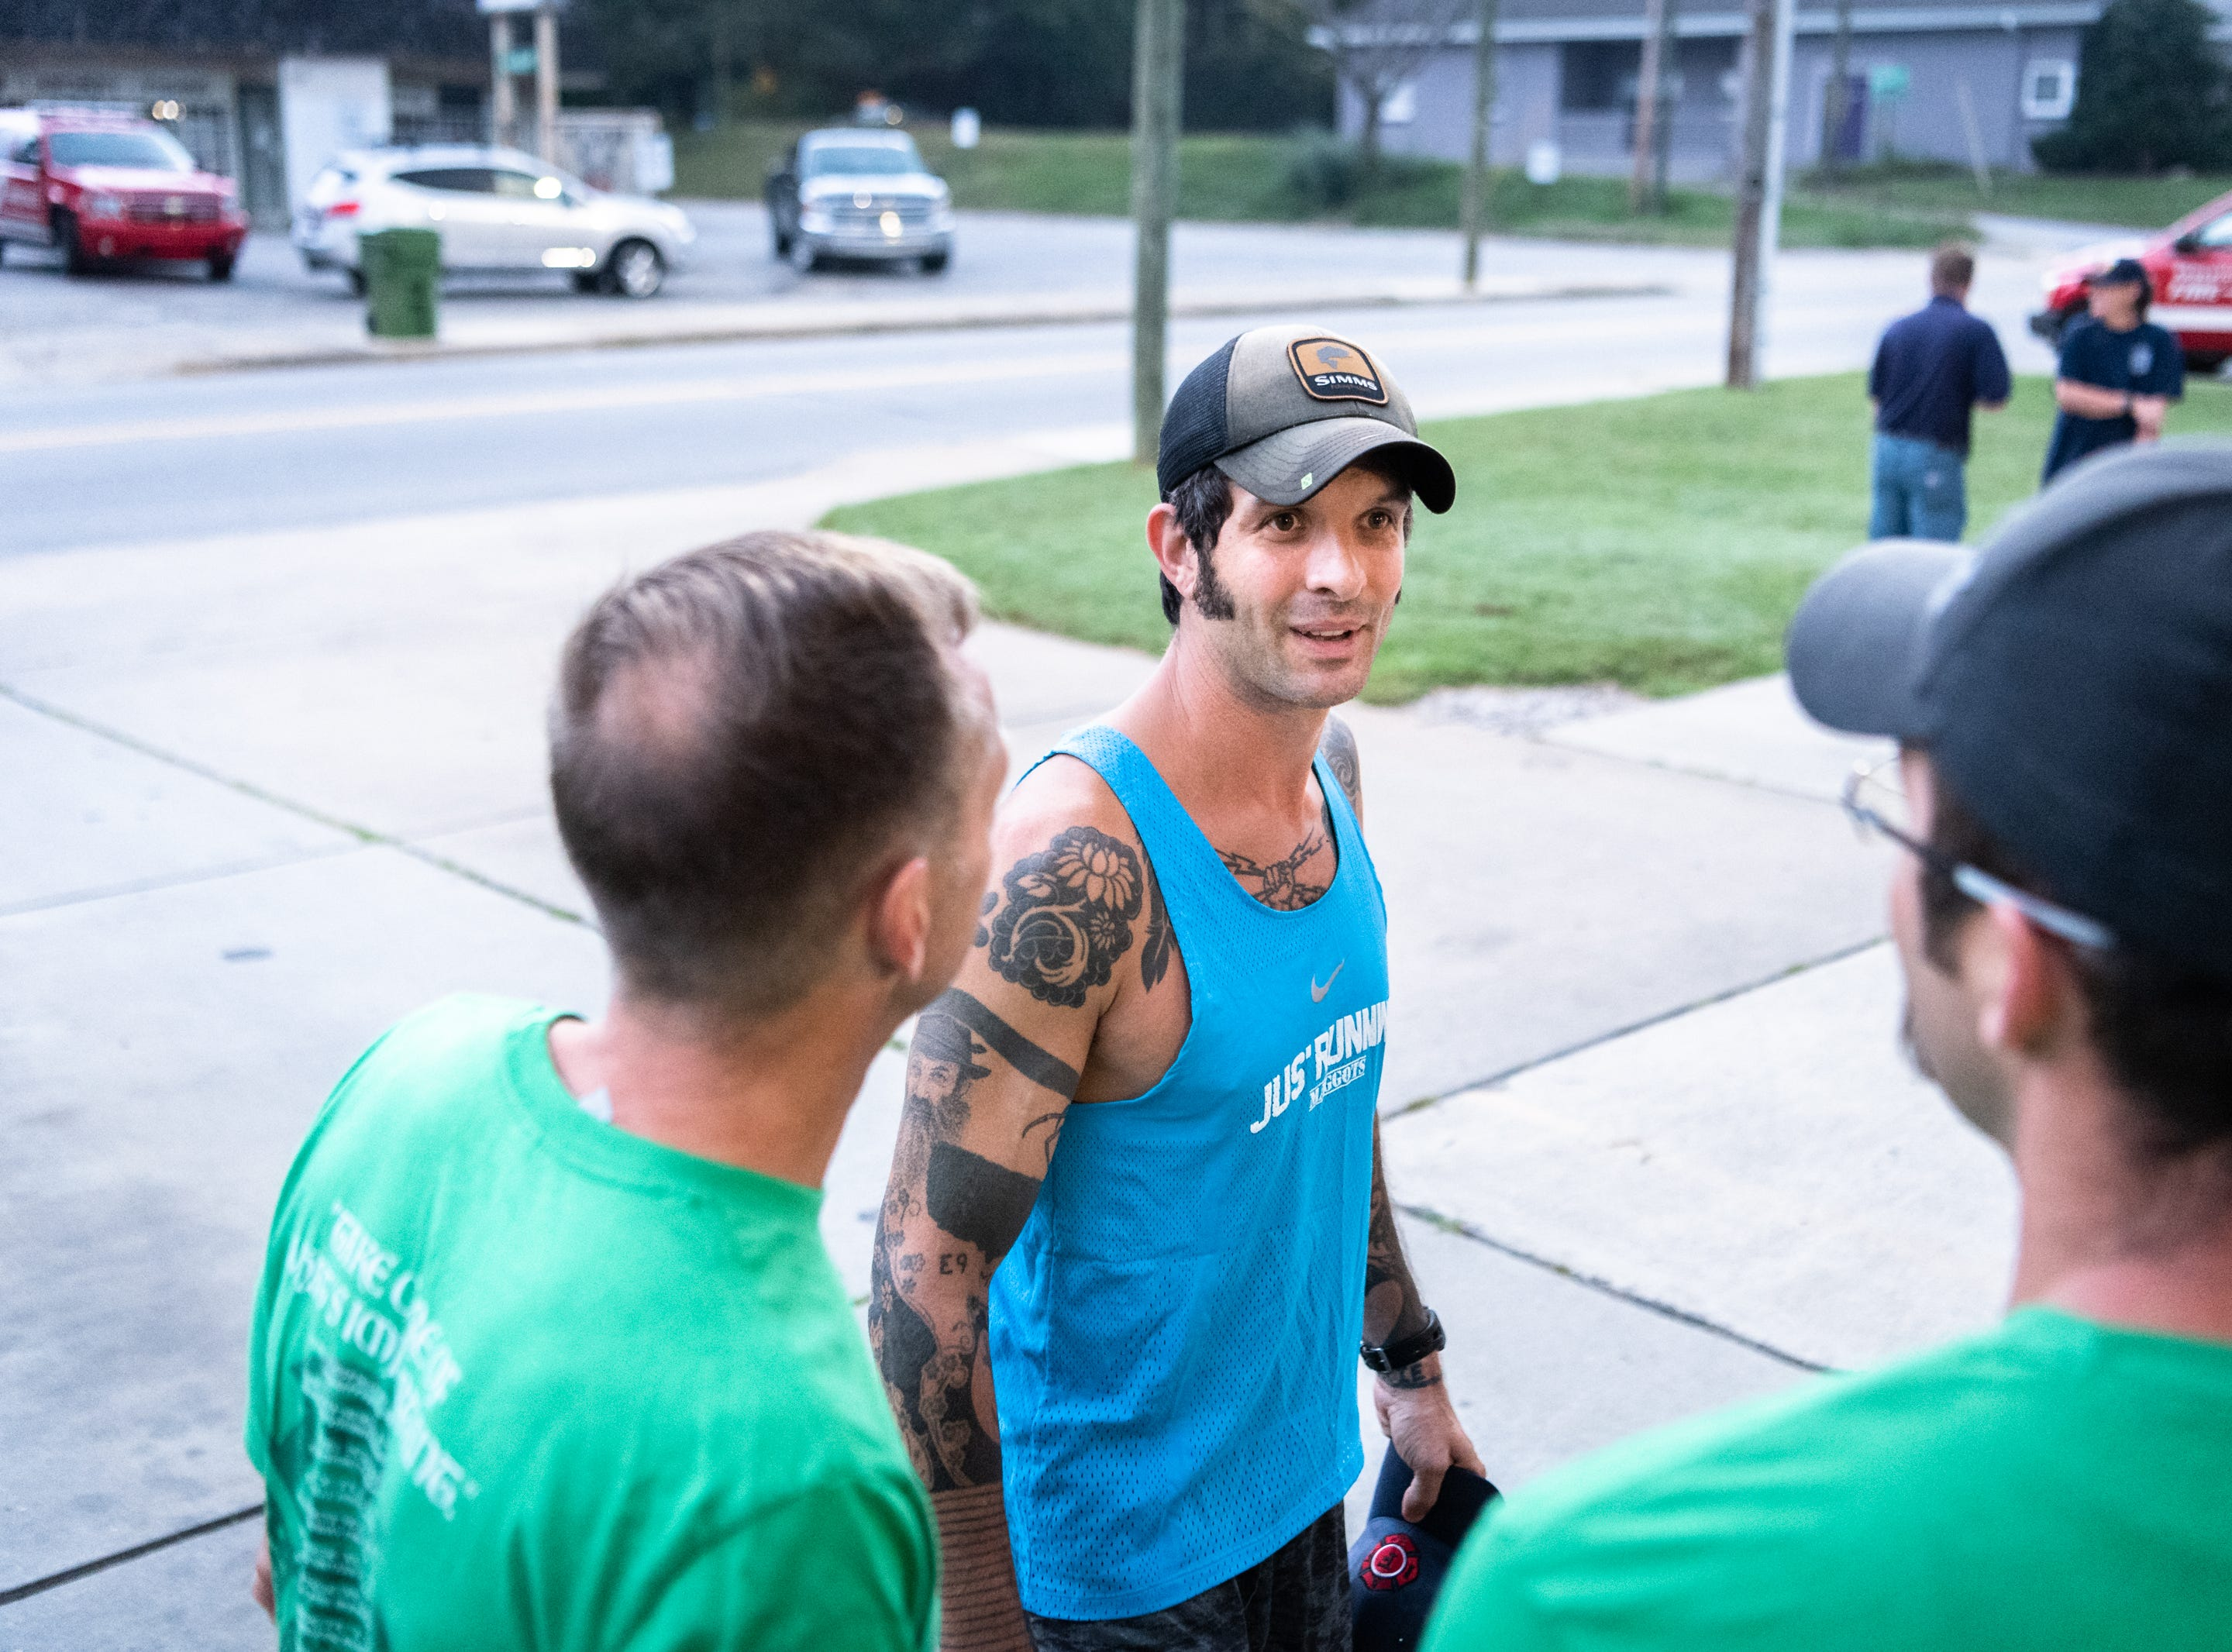 Mikey Riley, an Asheville firefighter, talks with other firefighters at station 6 on Haywood Road before beginning his 100k run to Ebbs Chapel and back Oct. 8, 2018. Riley is running one mile for every firefighter who has ever been diagnosed with cancer in an effort to raise awareness of firefighters' higher risk of cancer than the general population.